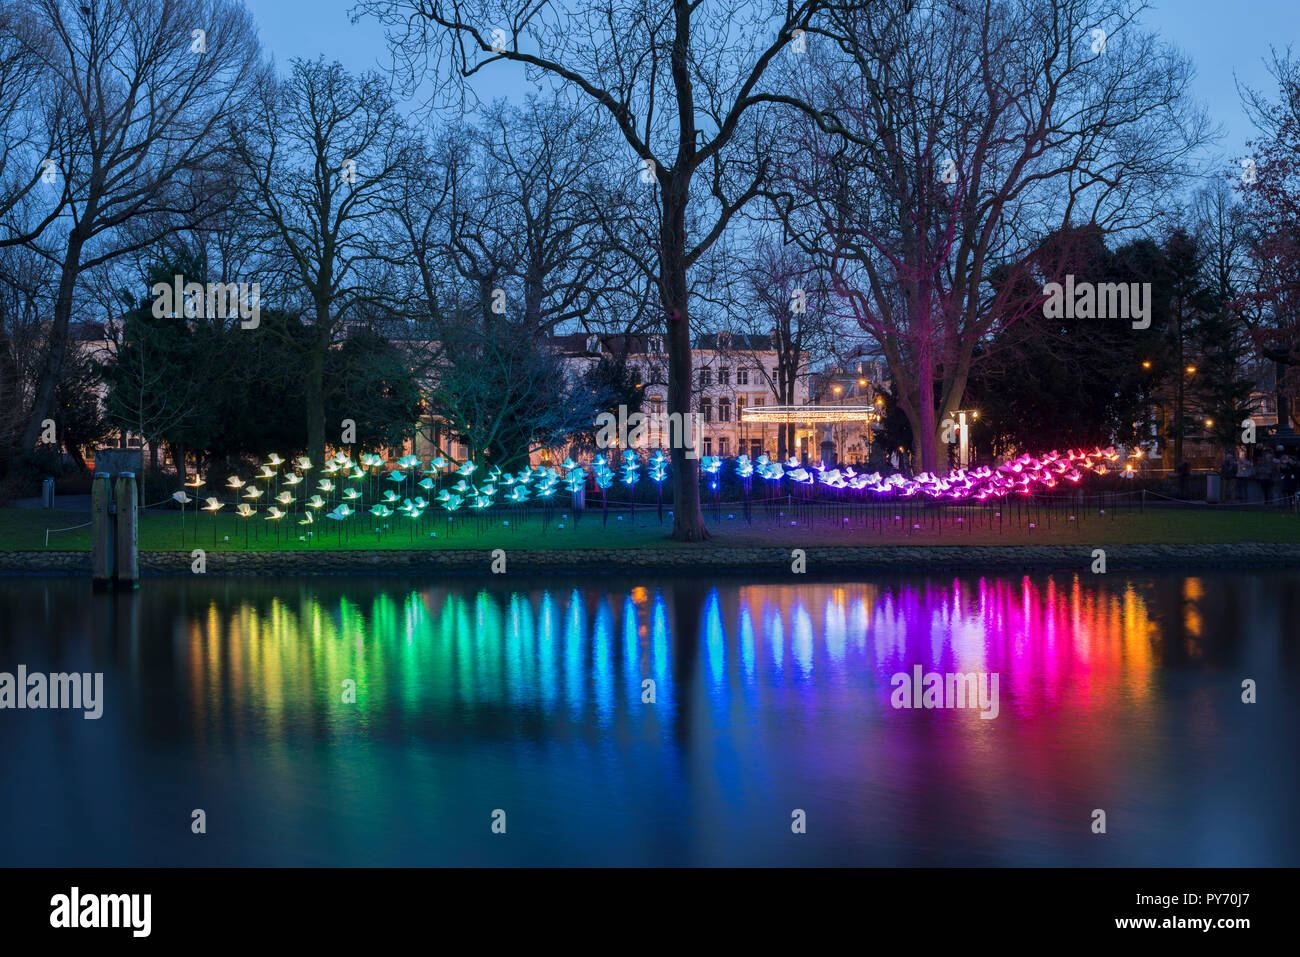 Colorful night in Amsterdam, Wertheimpark during the Amsterdam Light Festival with the artwork On the Wings of Freedom of Aether & Hemera. Stock Photo